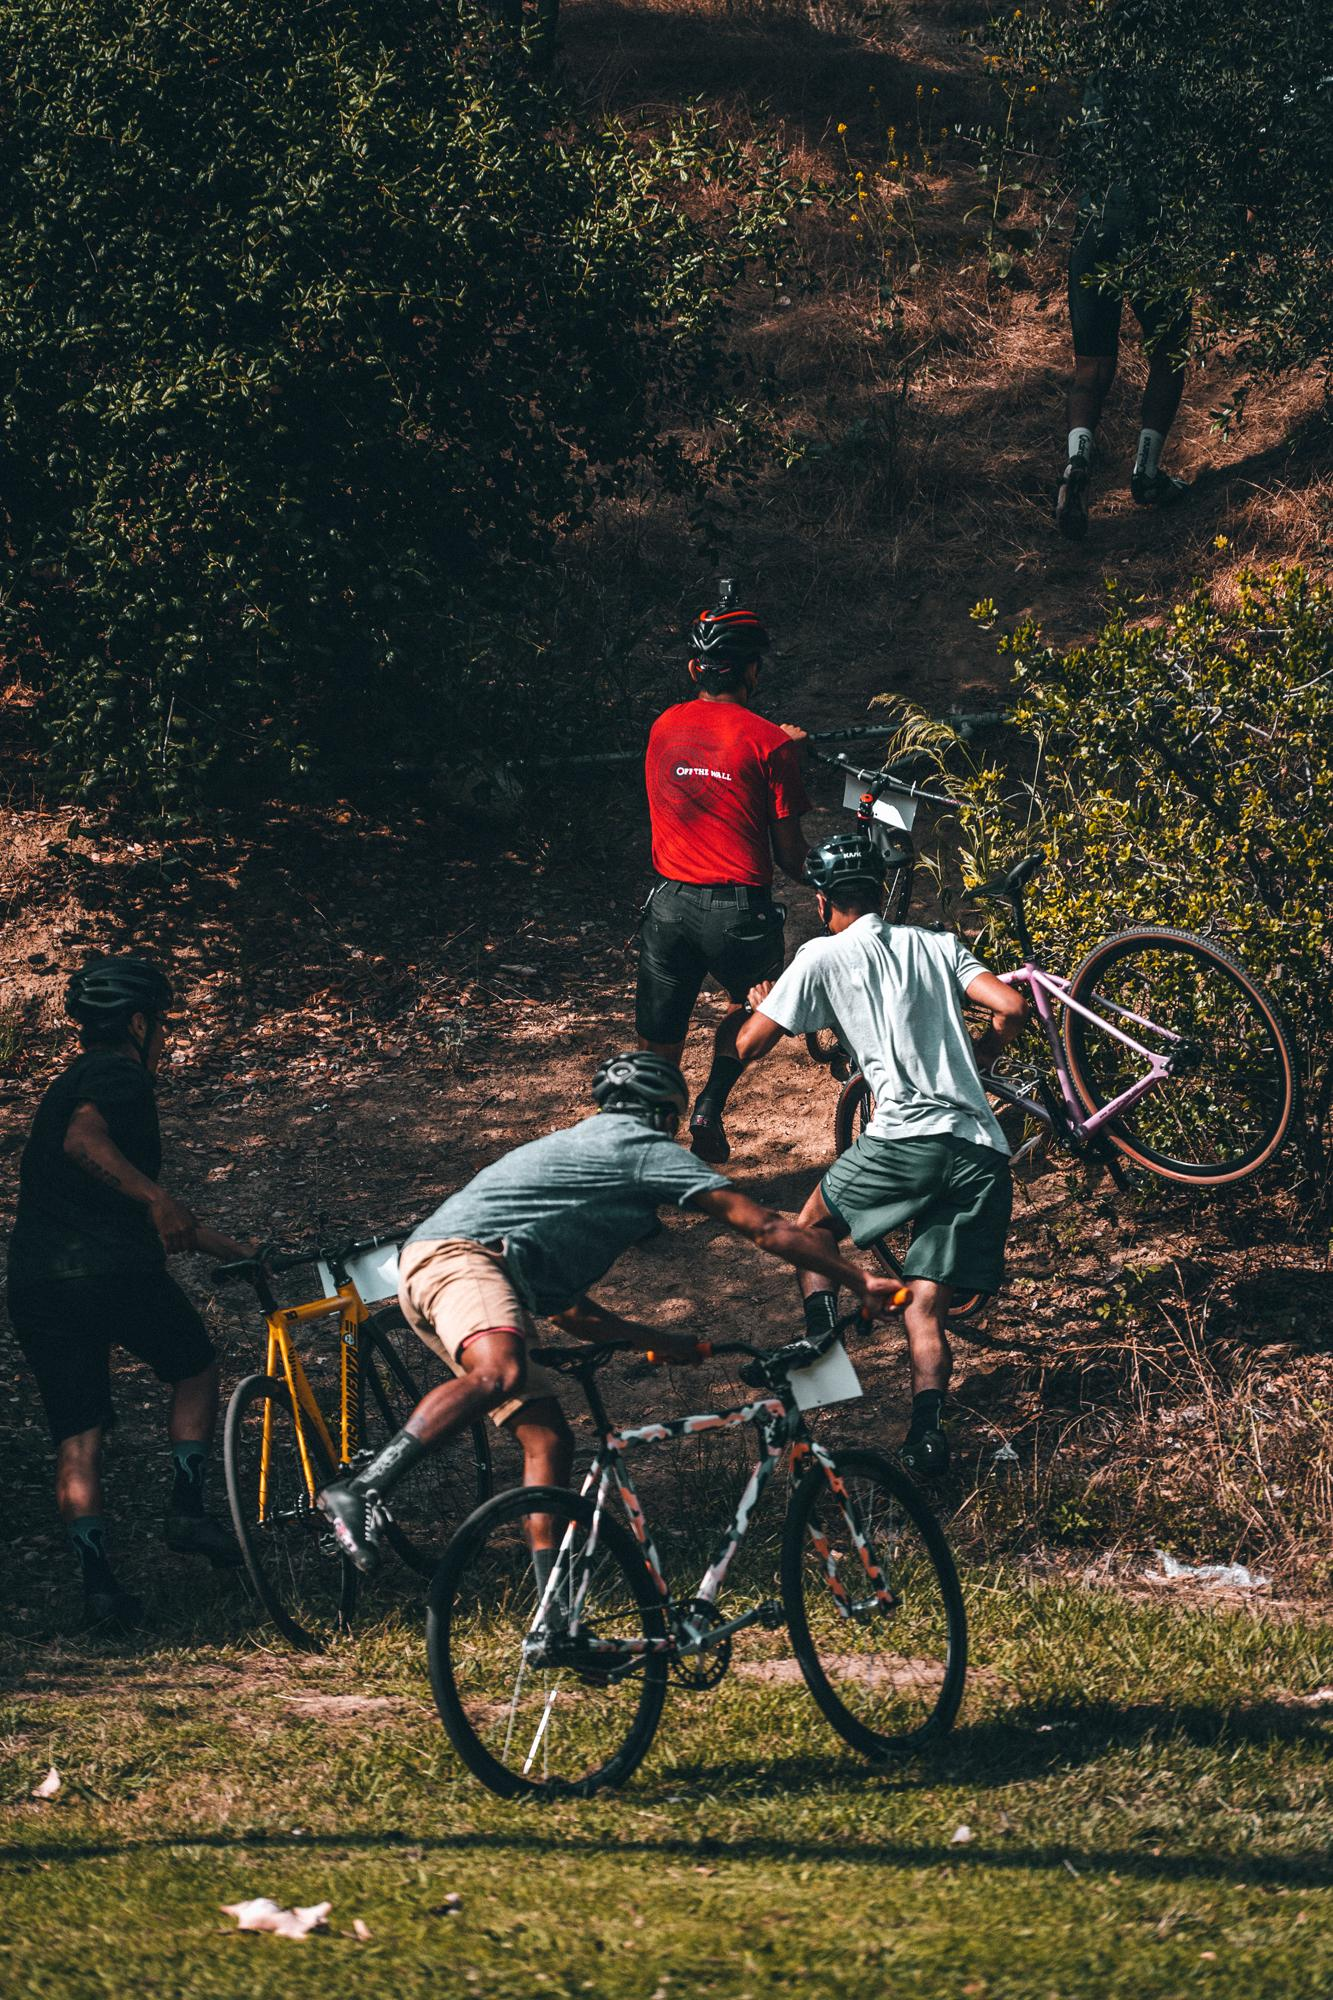 The Los Angeles Tracklocross Series